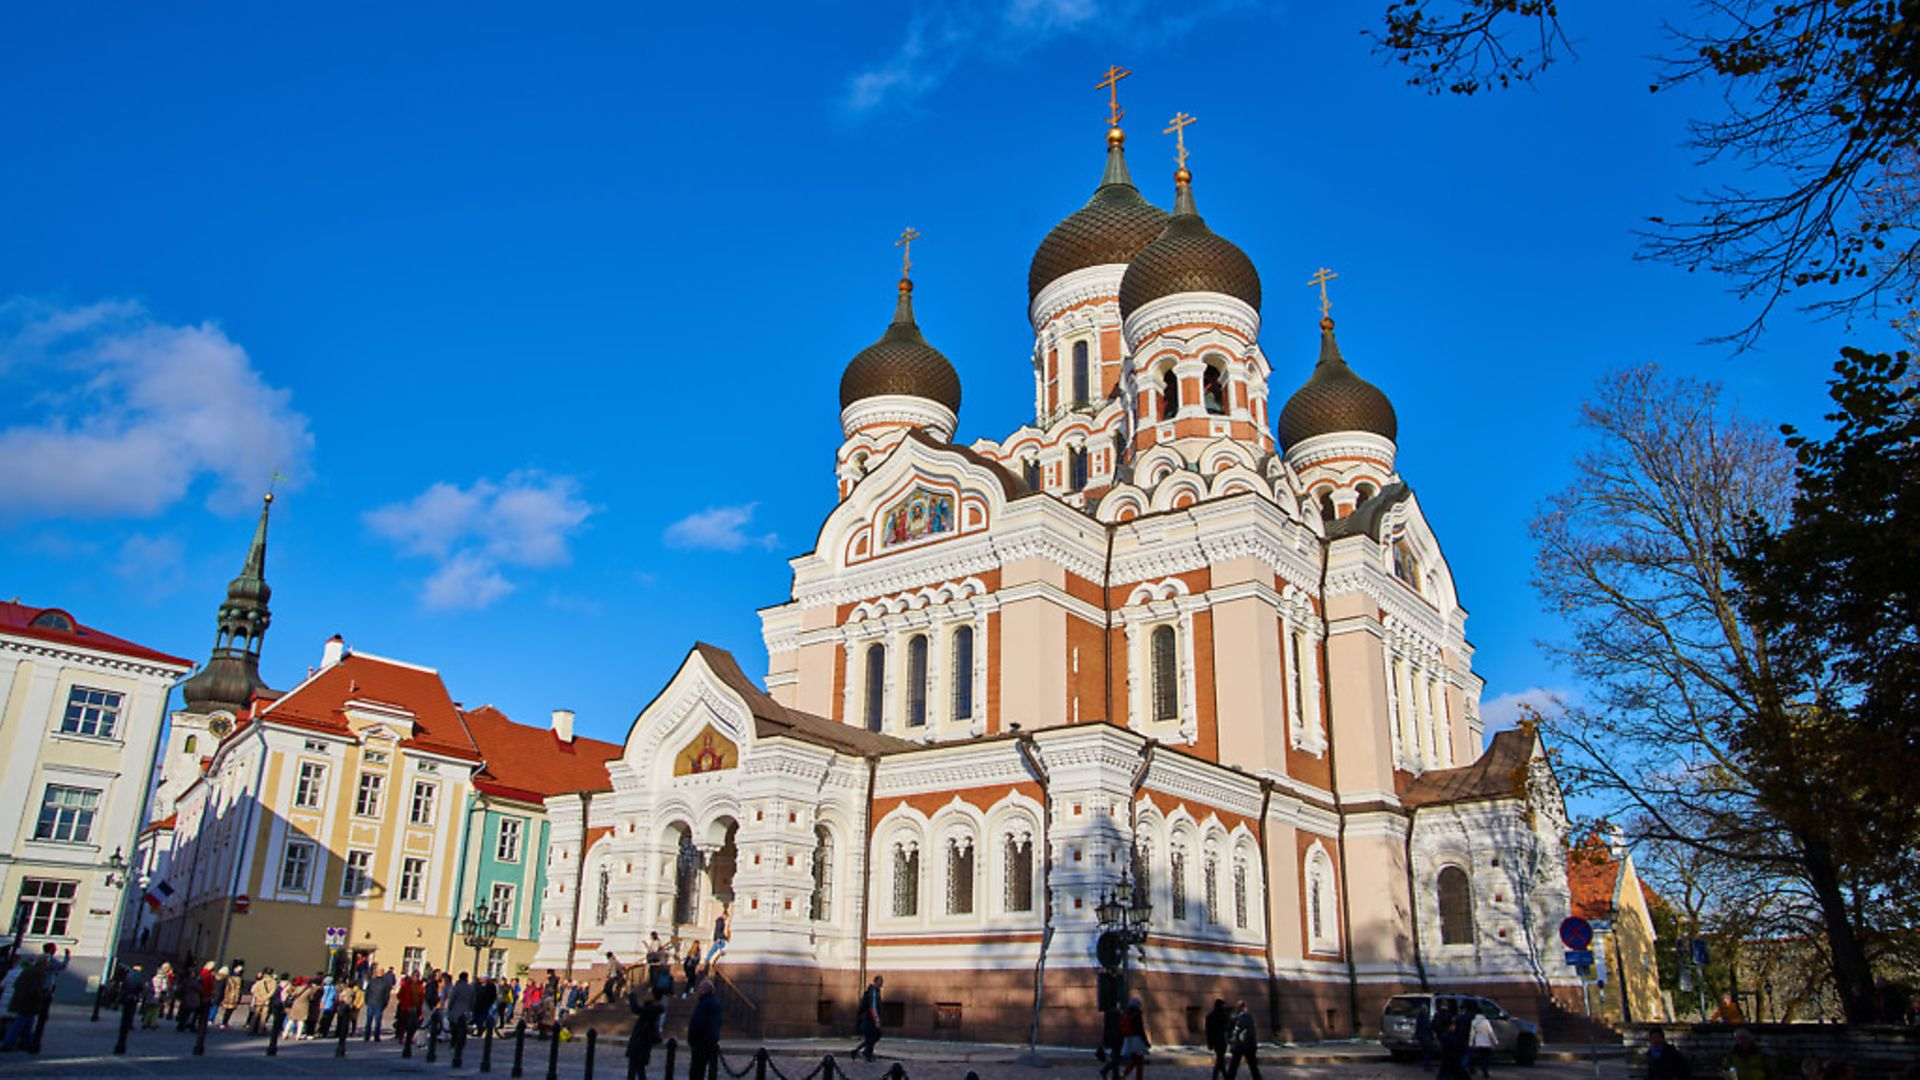 Alexander Newski Cathedral in the old town of Tallinn, Estonia. 'linn' translates at 'town'. Picture: Getty Images - Credit: Getty Images